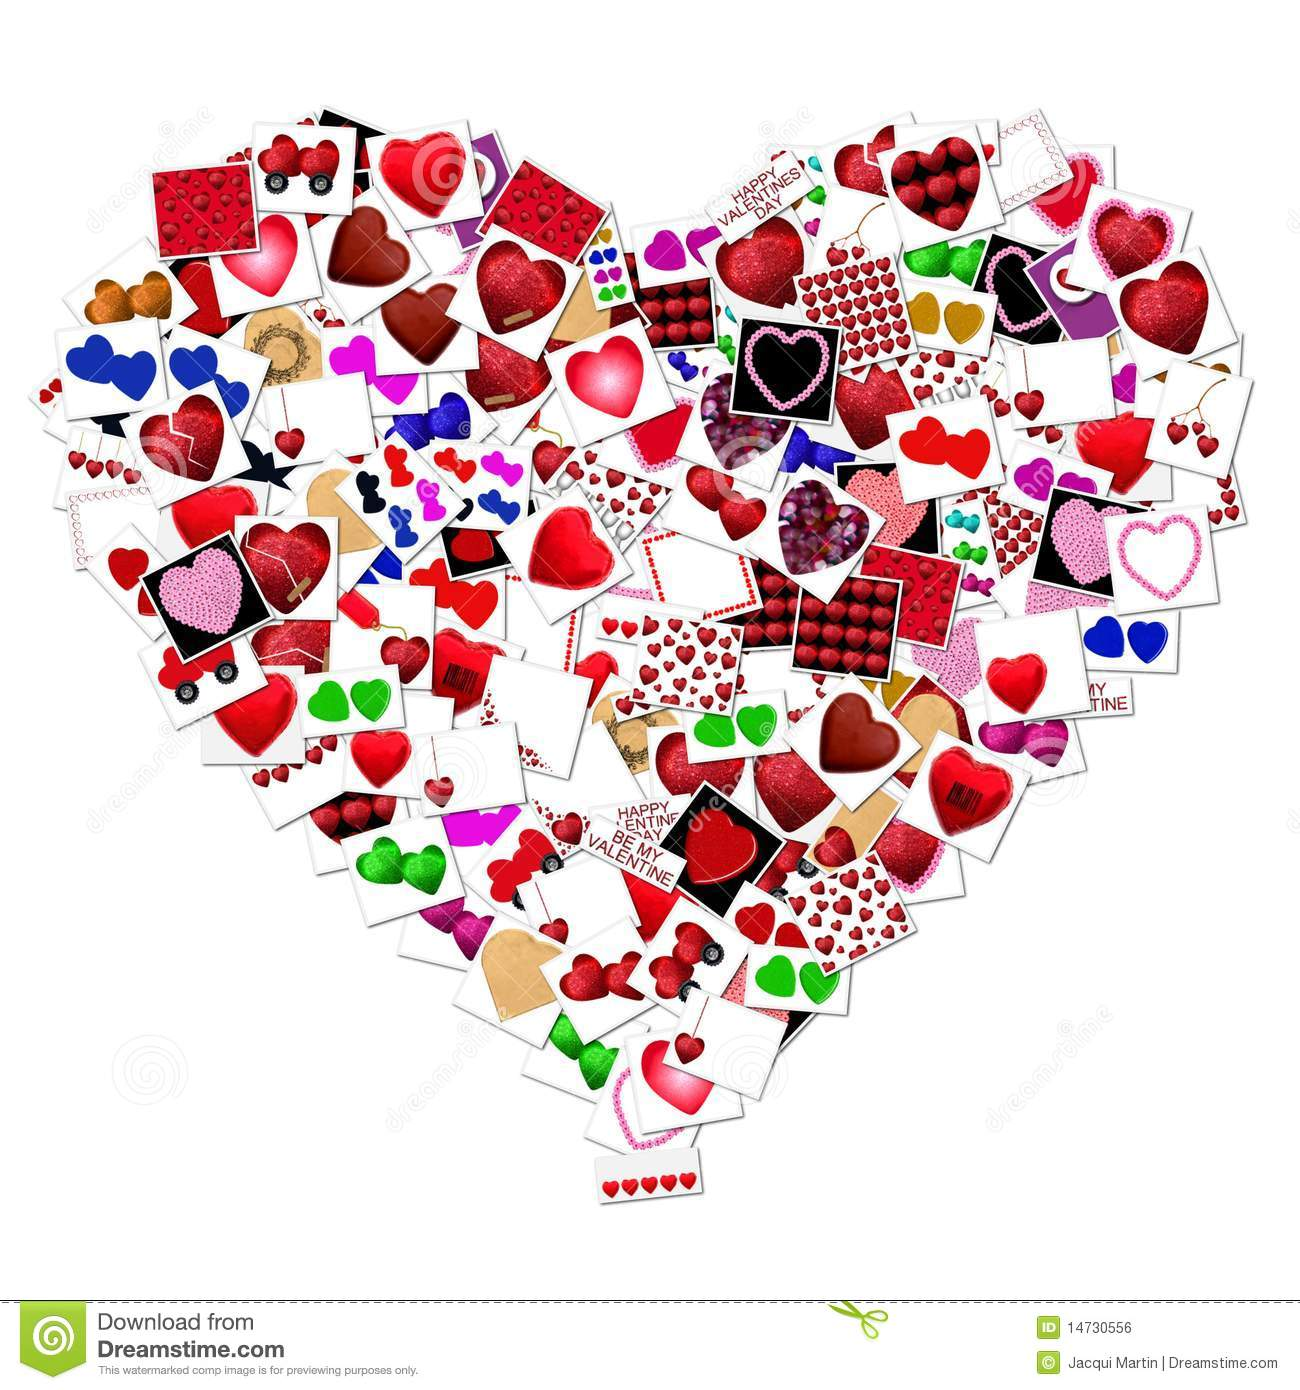 royaltyfree stock photo download heart collage